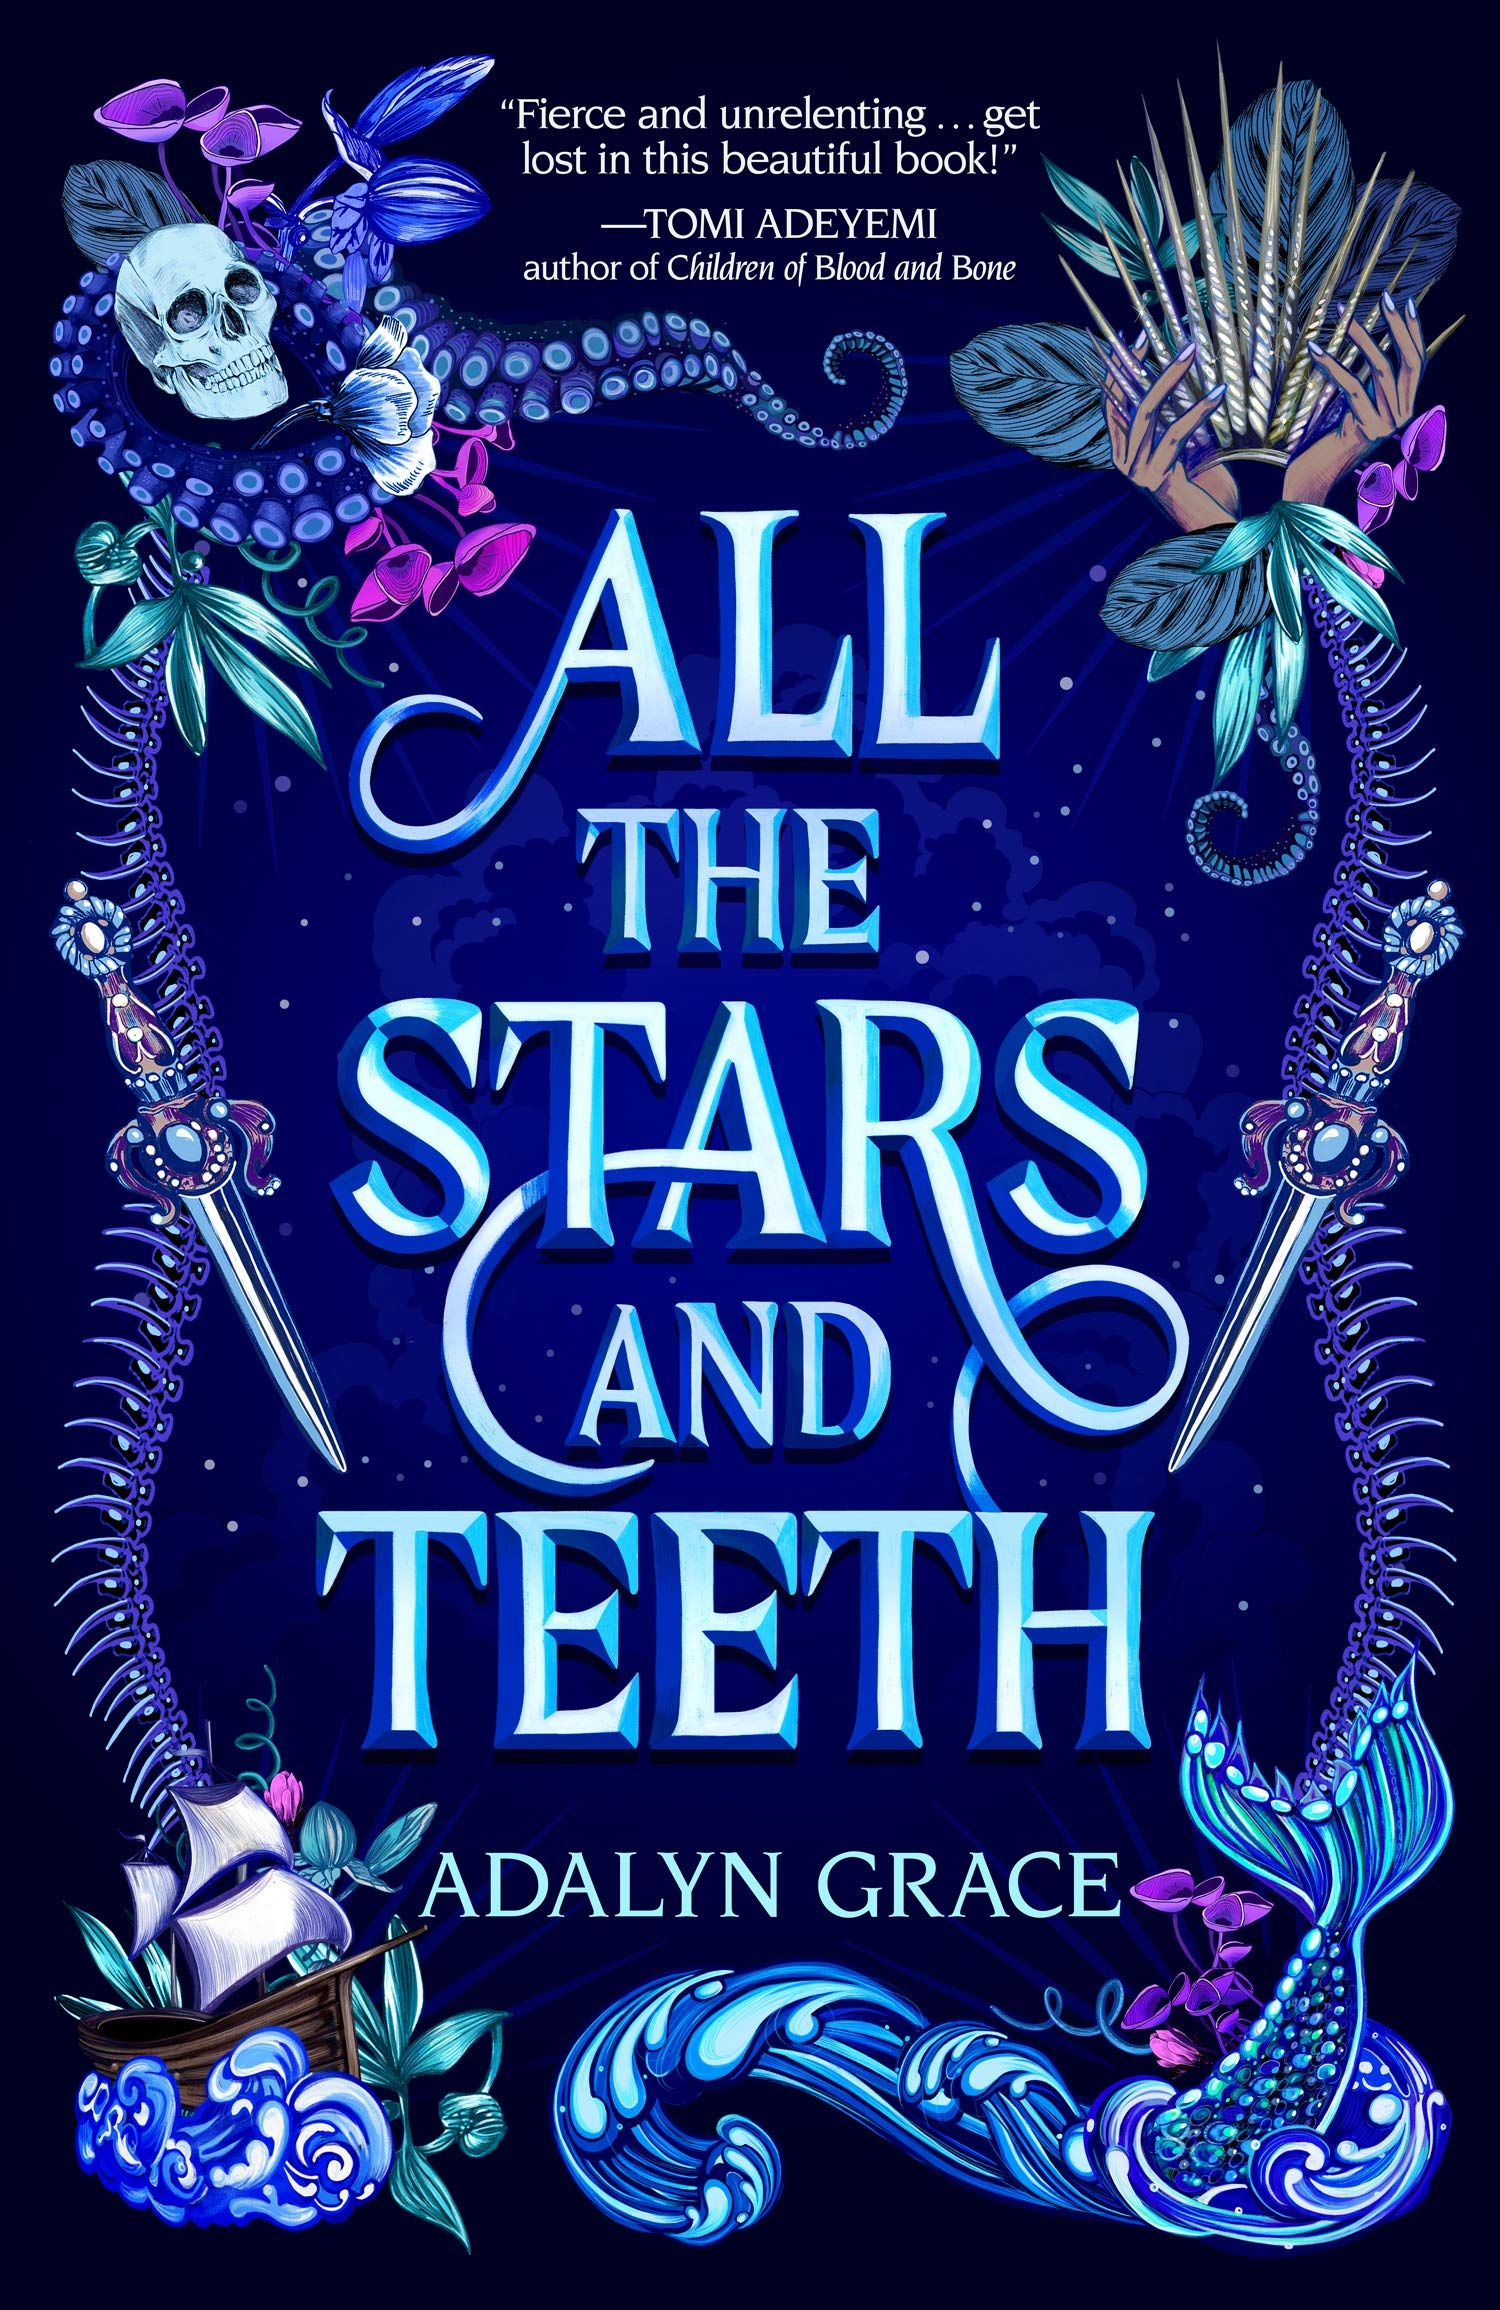 Amazon.com: All the Stars and Teeth (All the Stars and Teeth ...